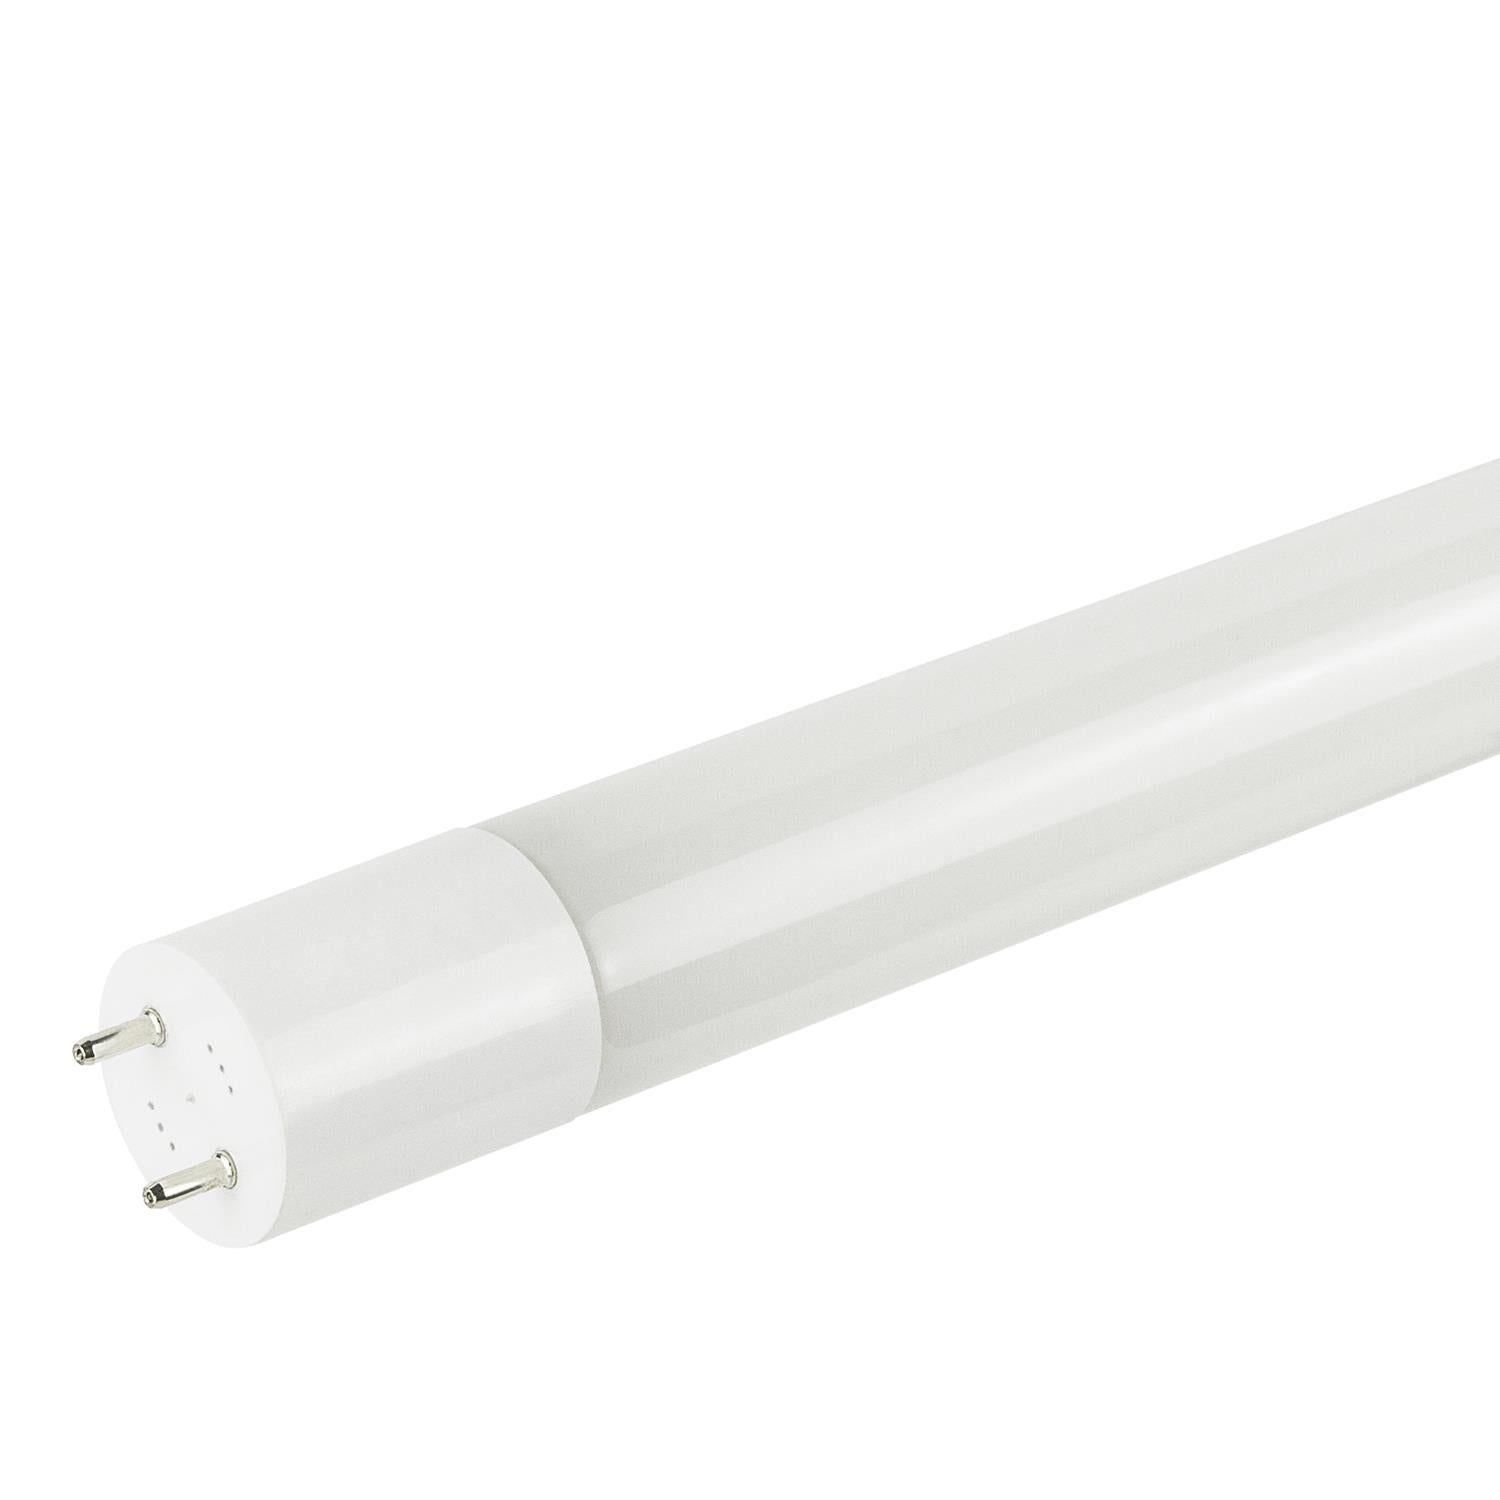 SUNLITE 8W T8 LED Tube 5000K Super White Light G13 Base